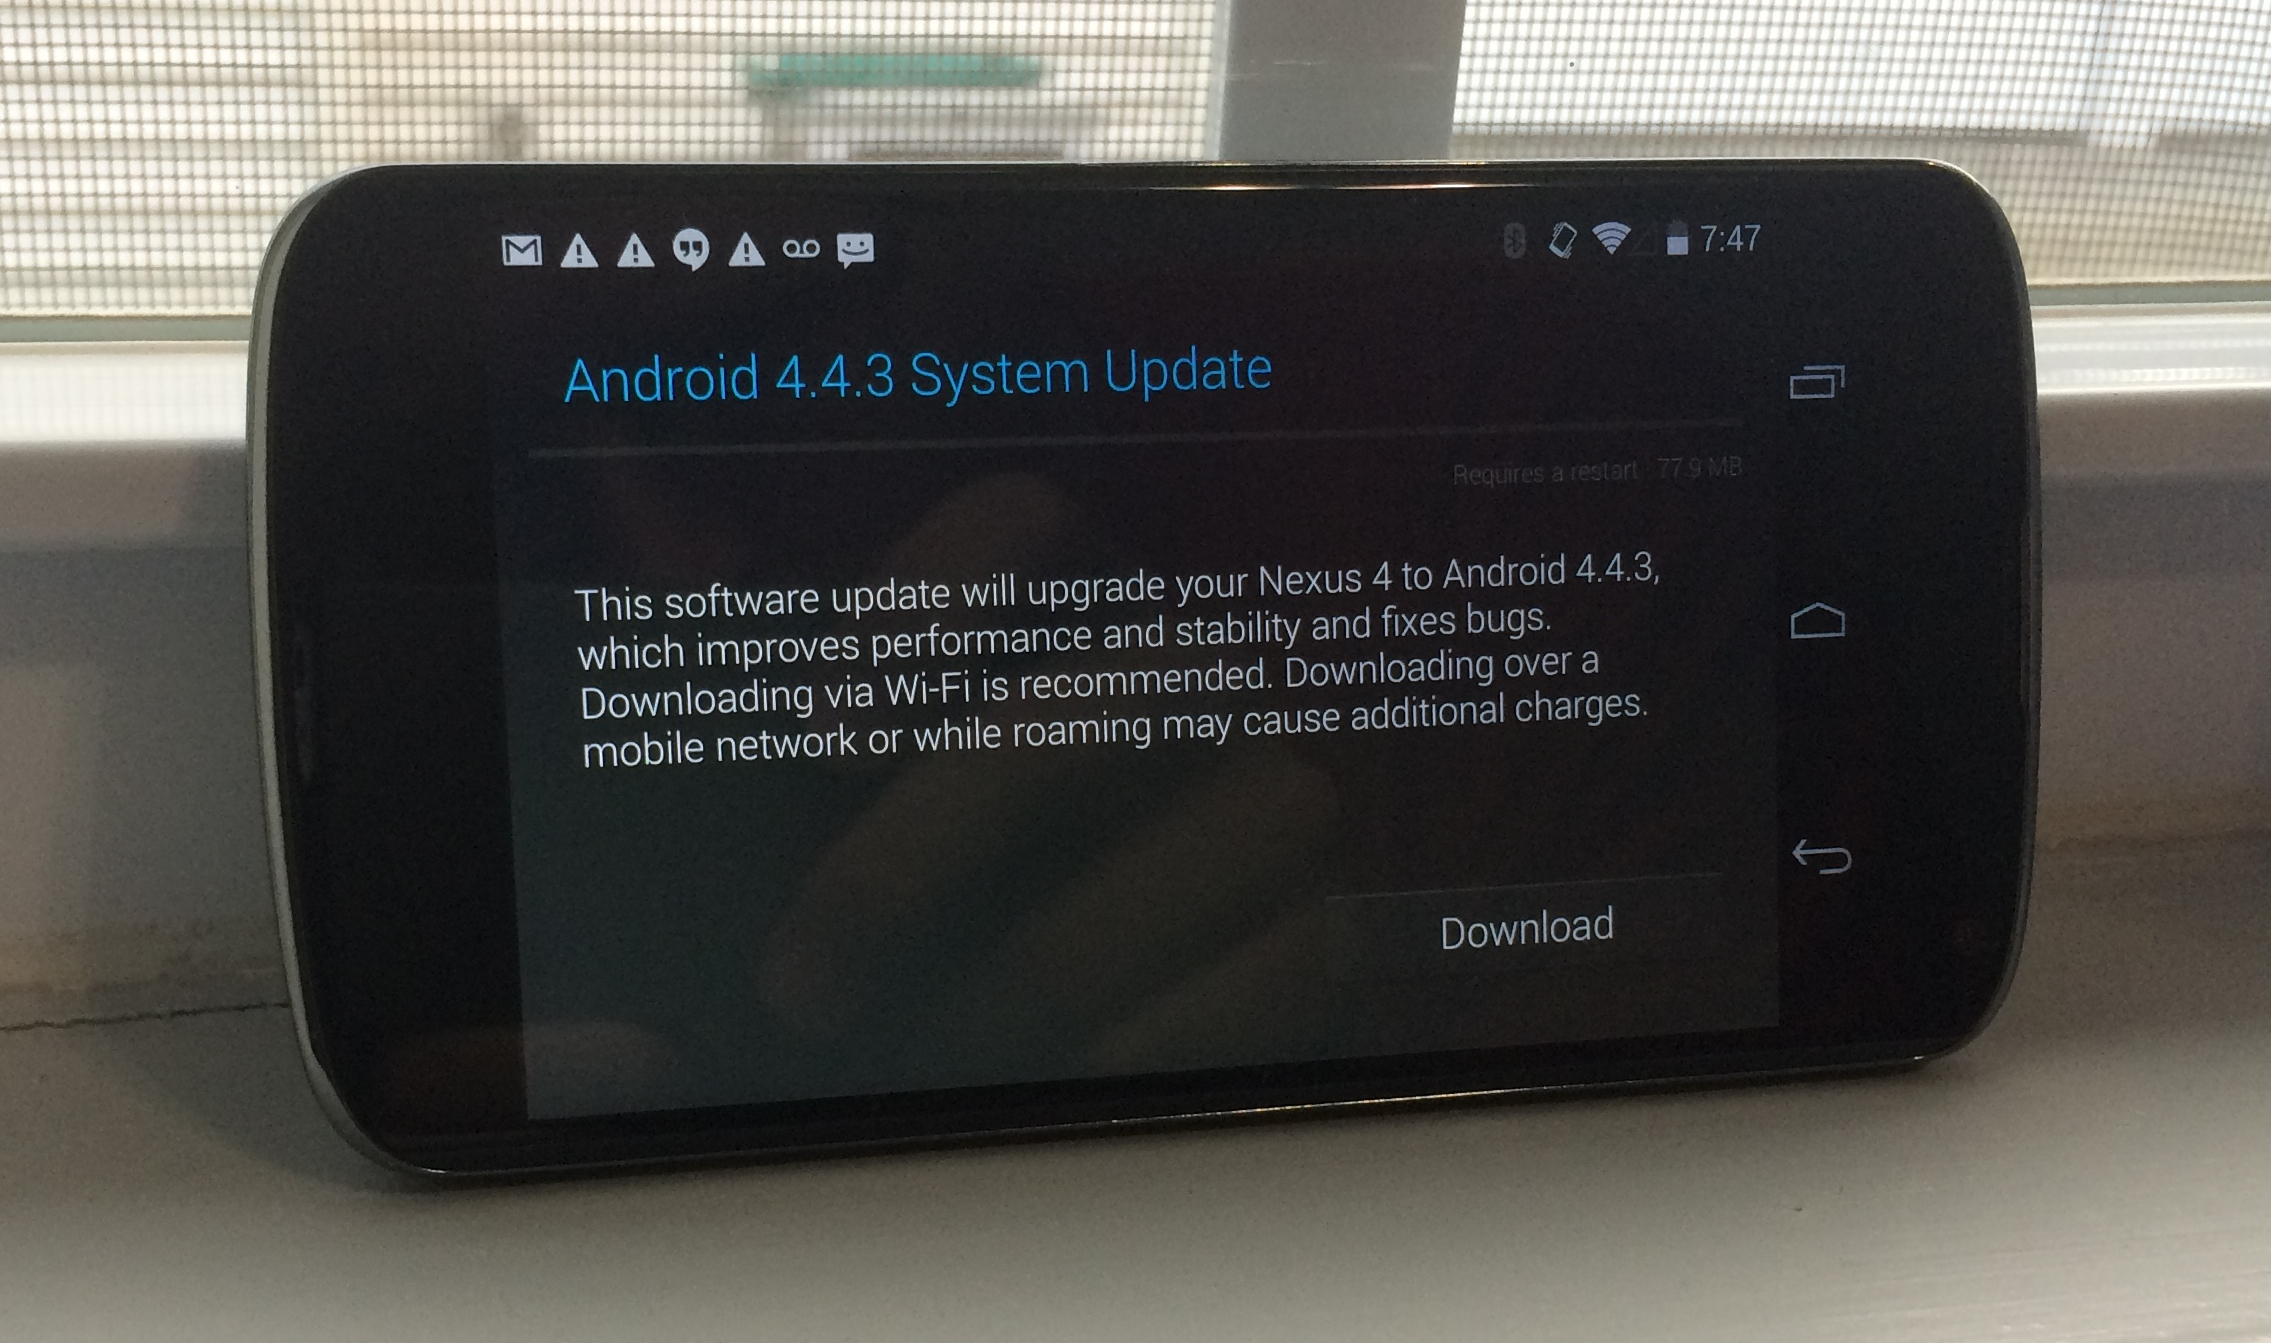 Nexus 4 Android 4.4.3 Review Early - 3